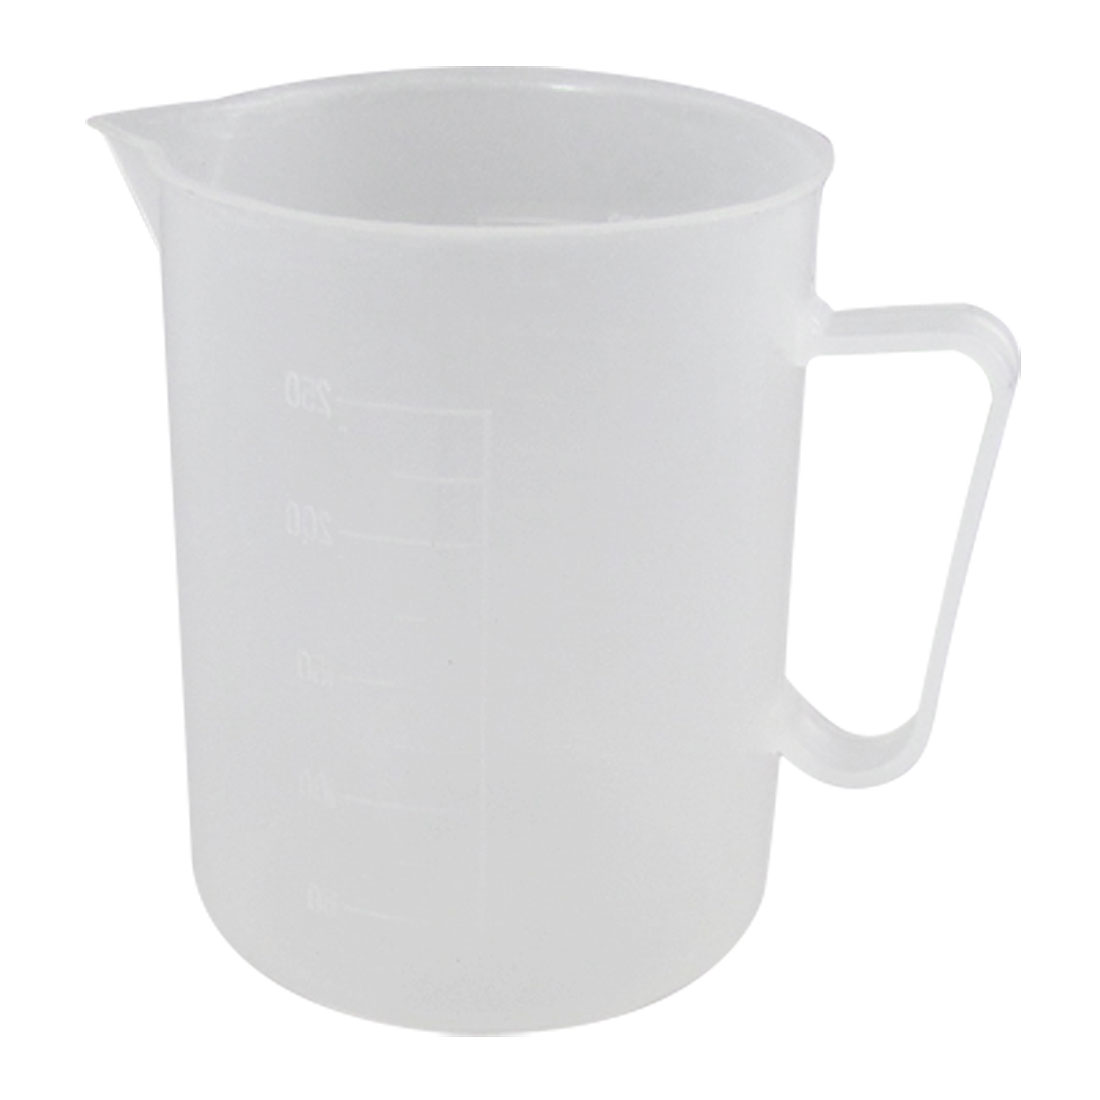 Laboratory Chemistry Set Clear White Plastic Cup Beaker 250mL